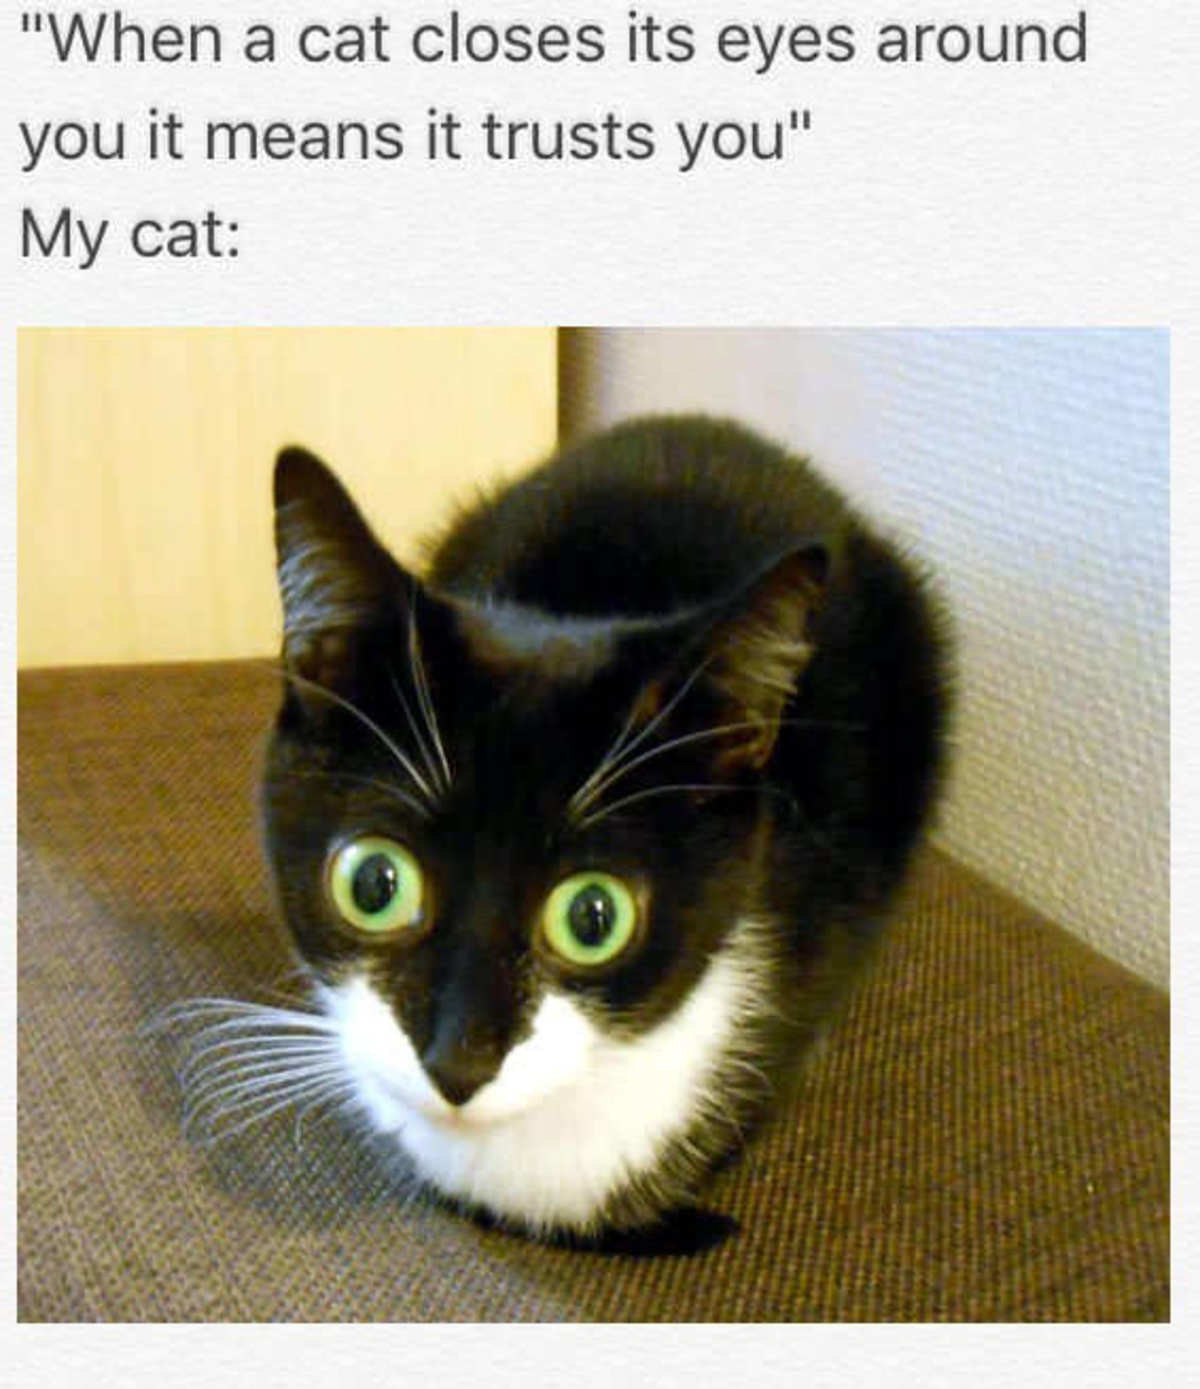 """Tiny cat Dump. join list: CuteKitty (401 subs)Mention History. it , ii it trusts you"""" My cat:lloll! iii' Alli, t Tami Look at this stupid idiot 10: 32 PM . 31 D"""